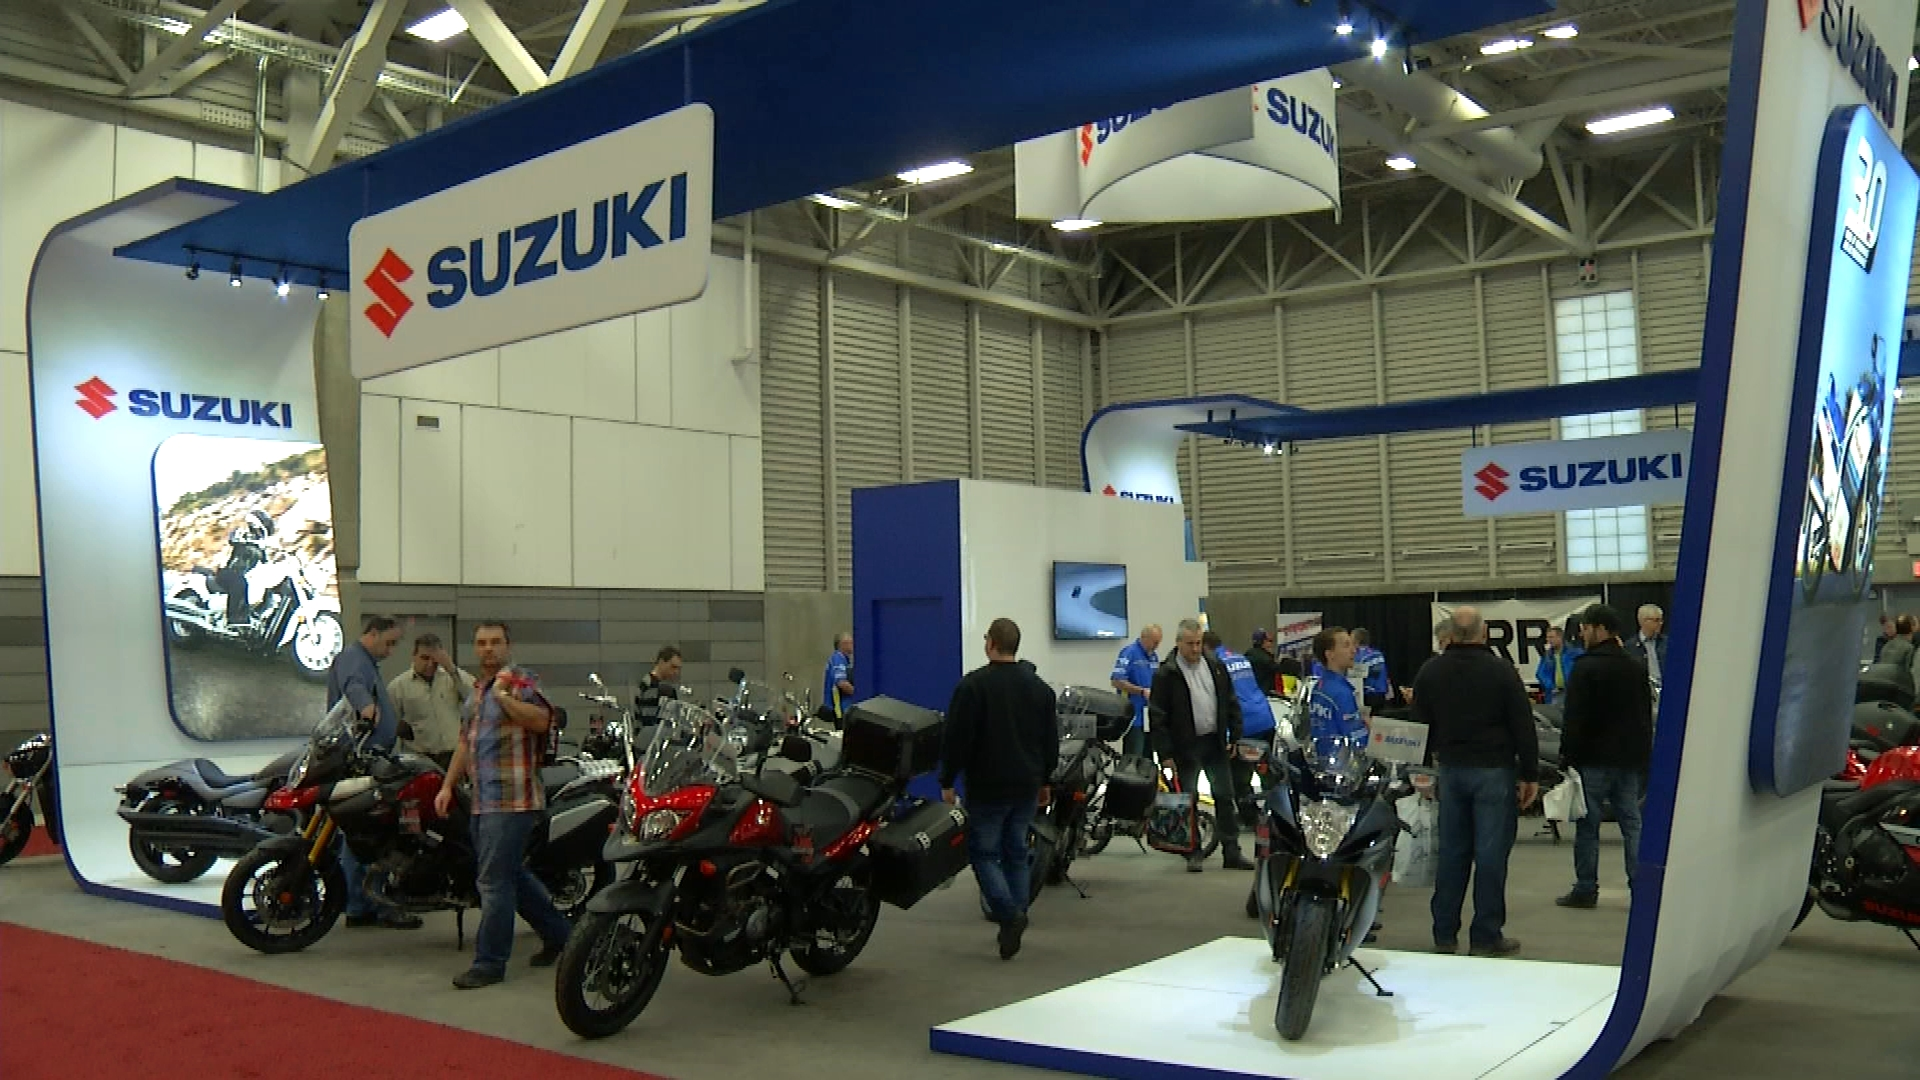 Ams vtt motoneige le salon de la moto et du vtt de qu bec for Salon de the quebec